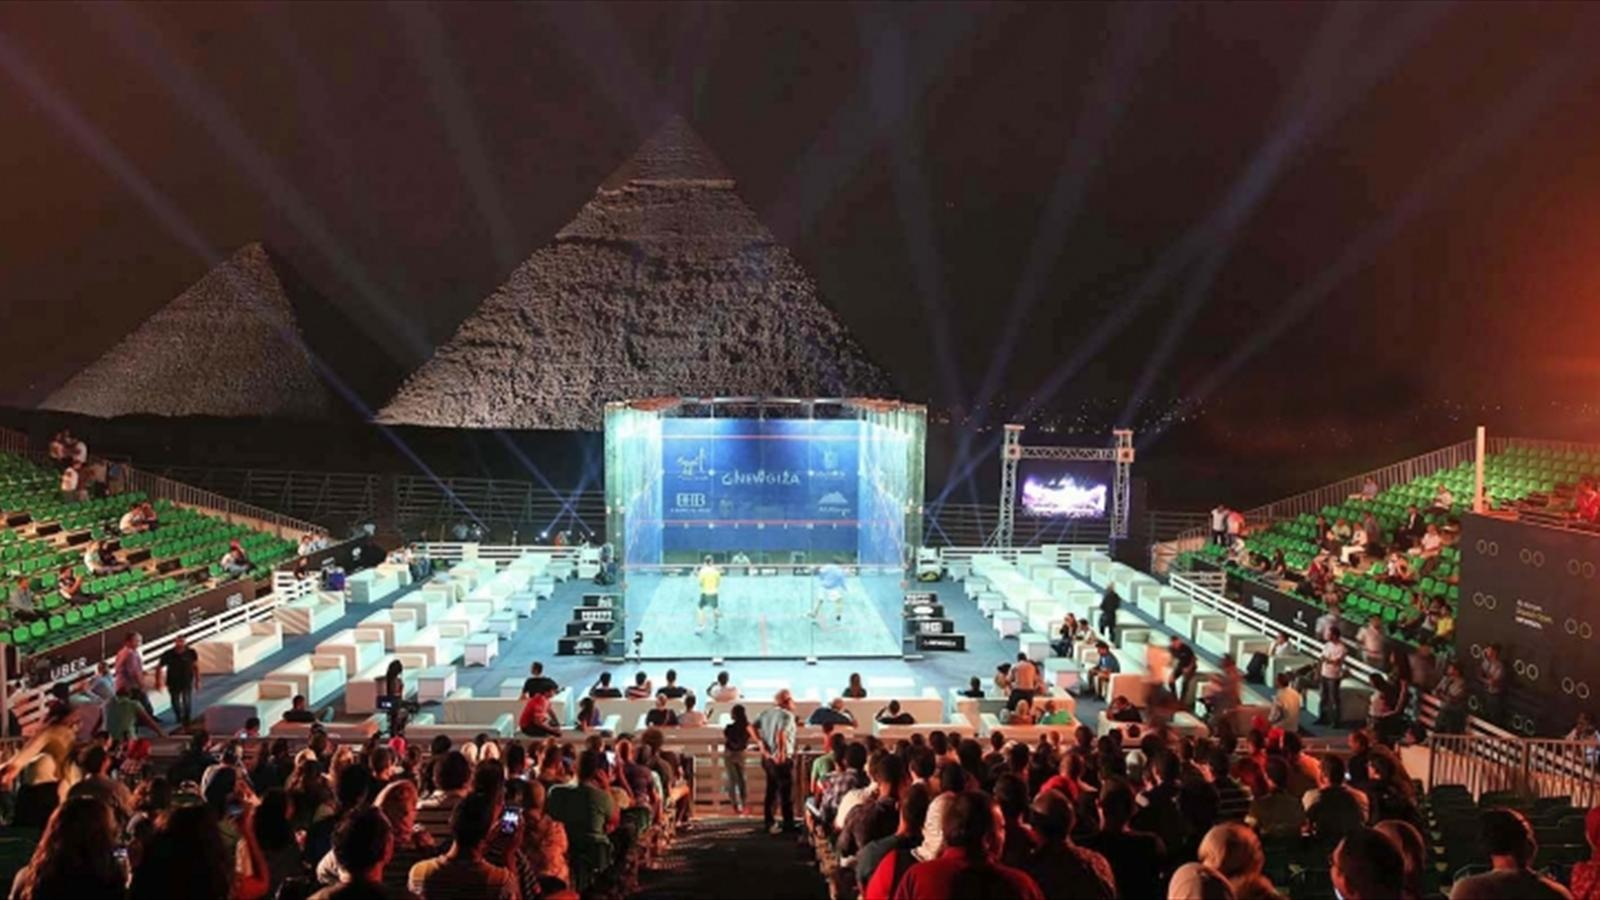 Elshorbagy and El Sherbini through to quarter-finals in front of Great Pyramid of Giza - Squash ...